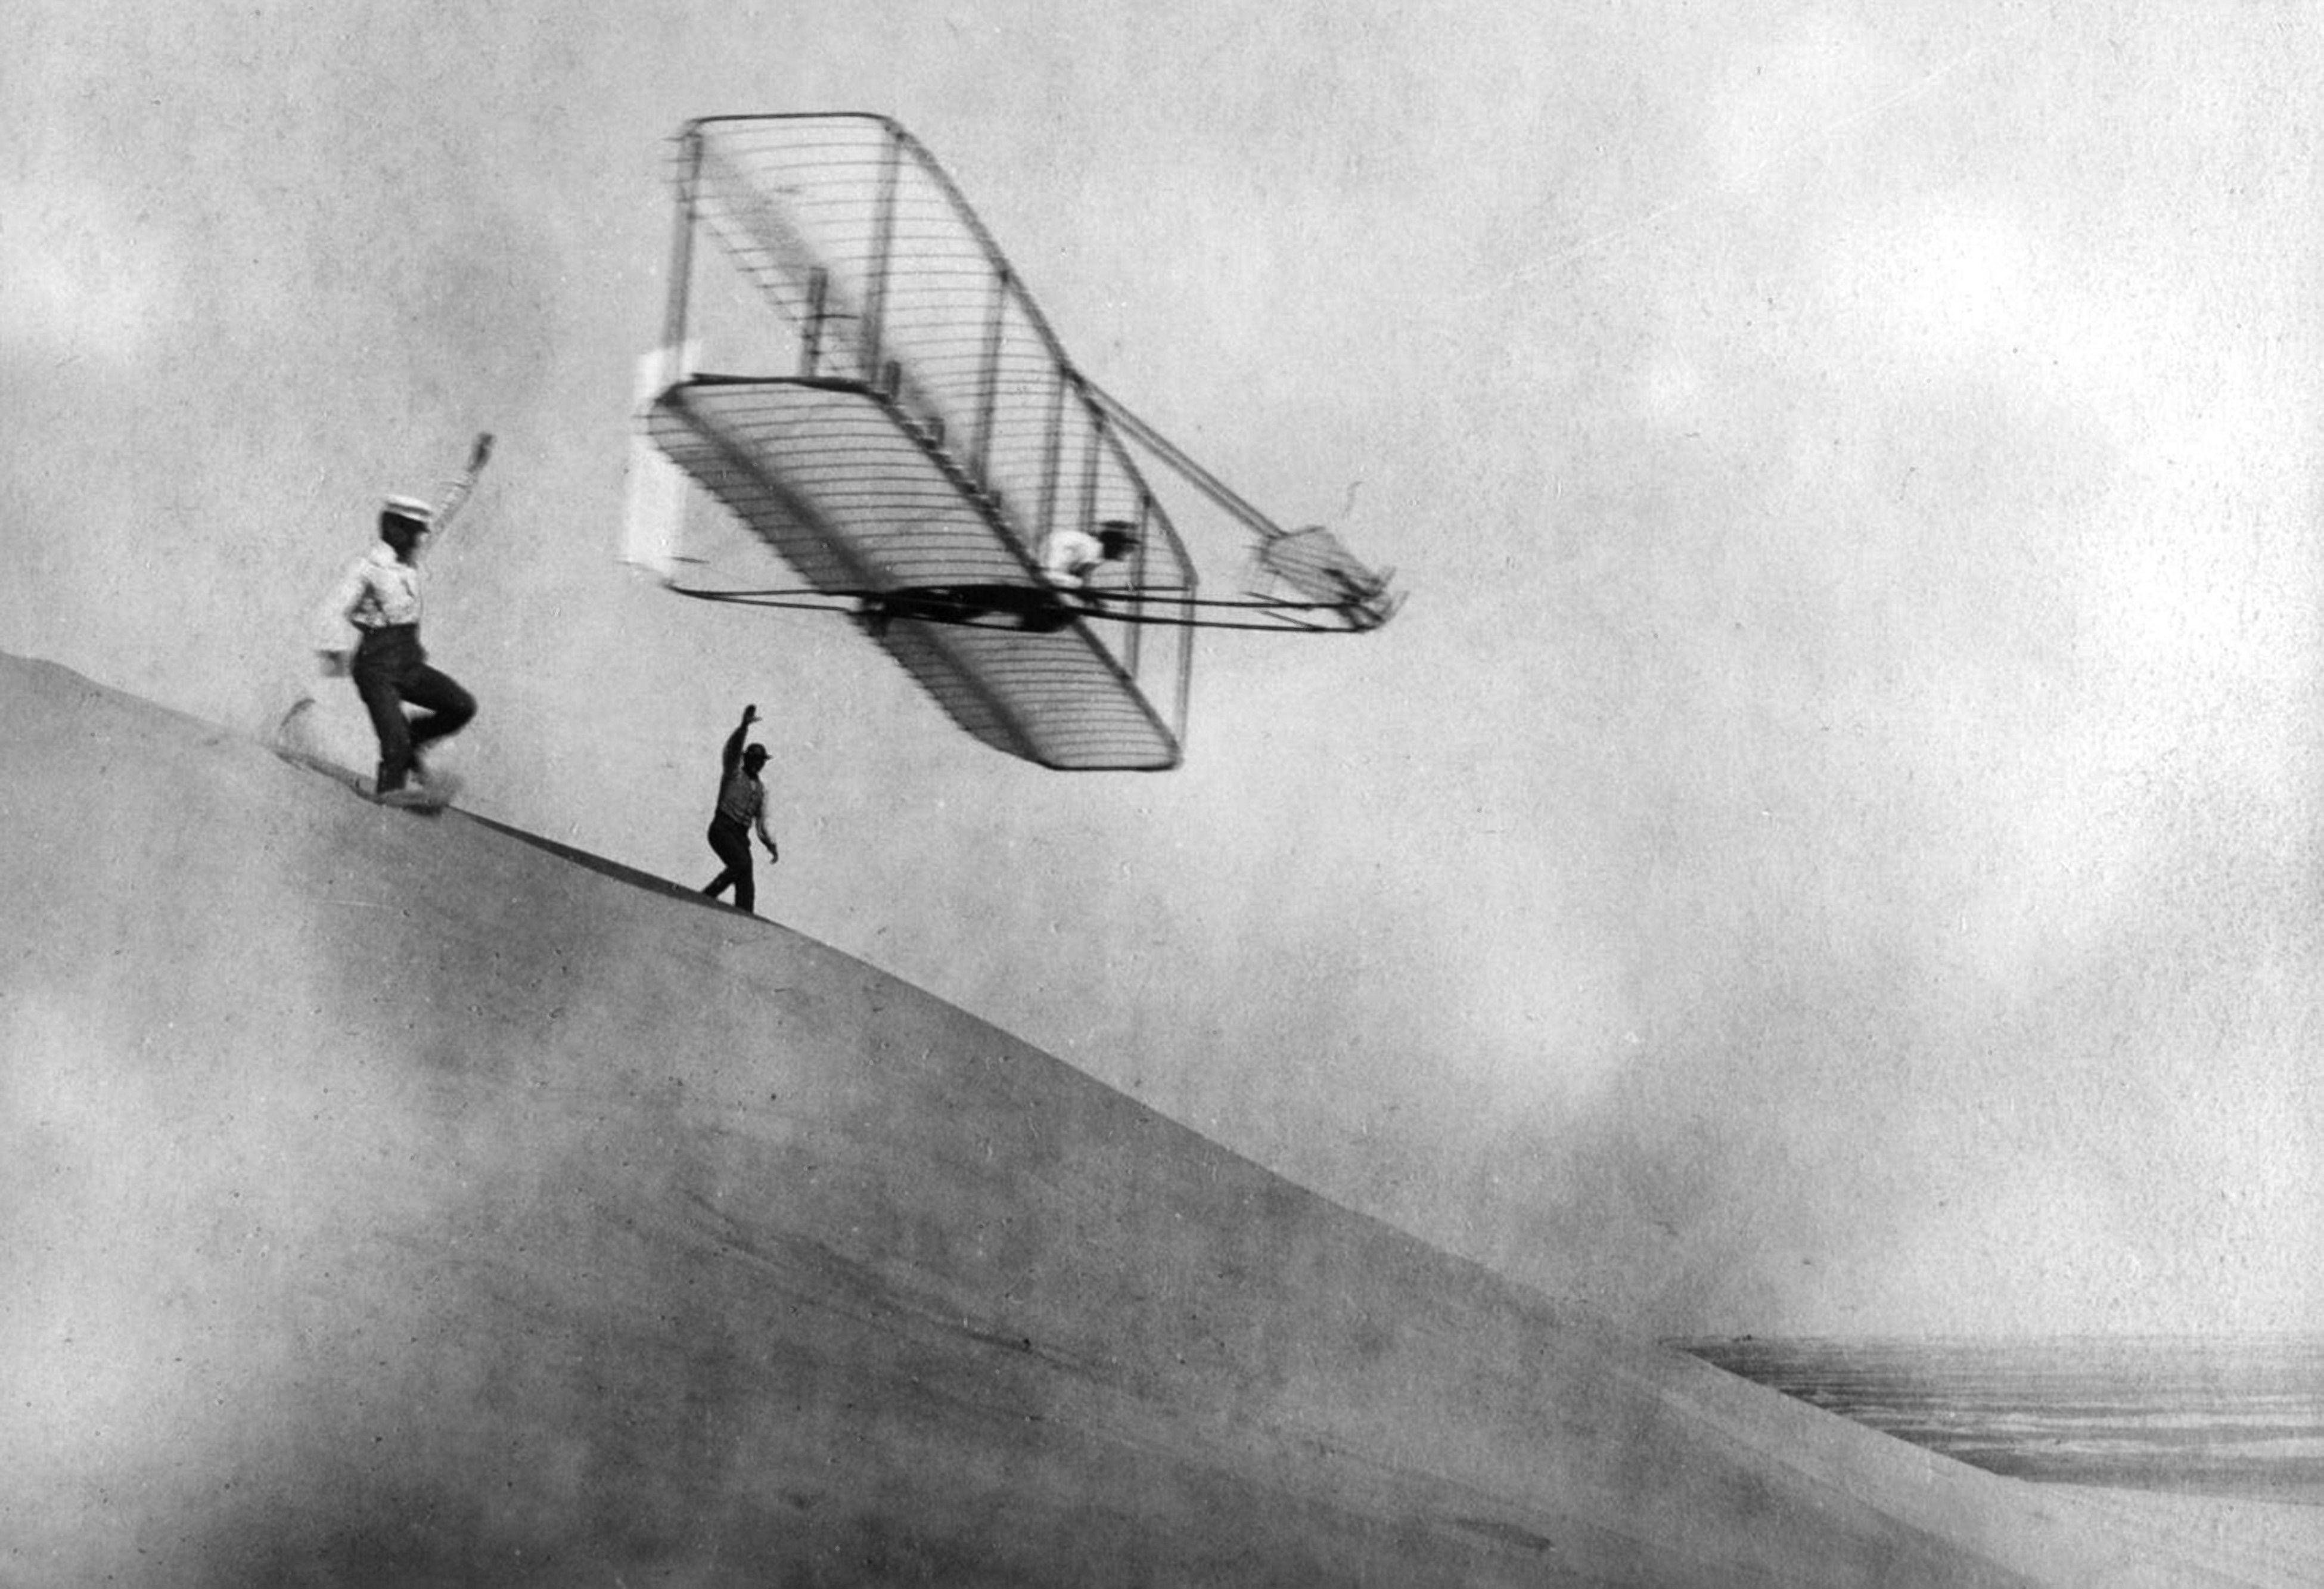 Why Did the Wright Brothers Succeed When Others Failed?